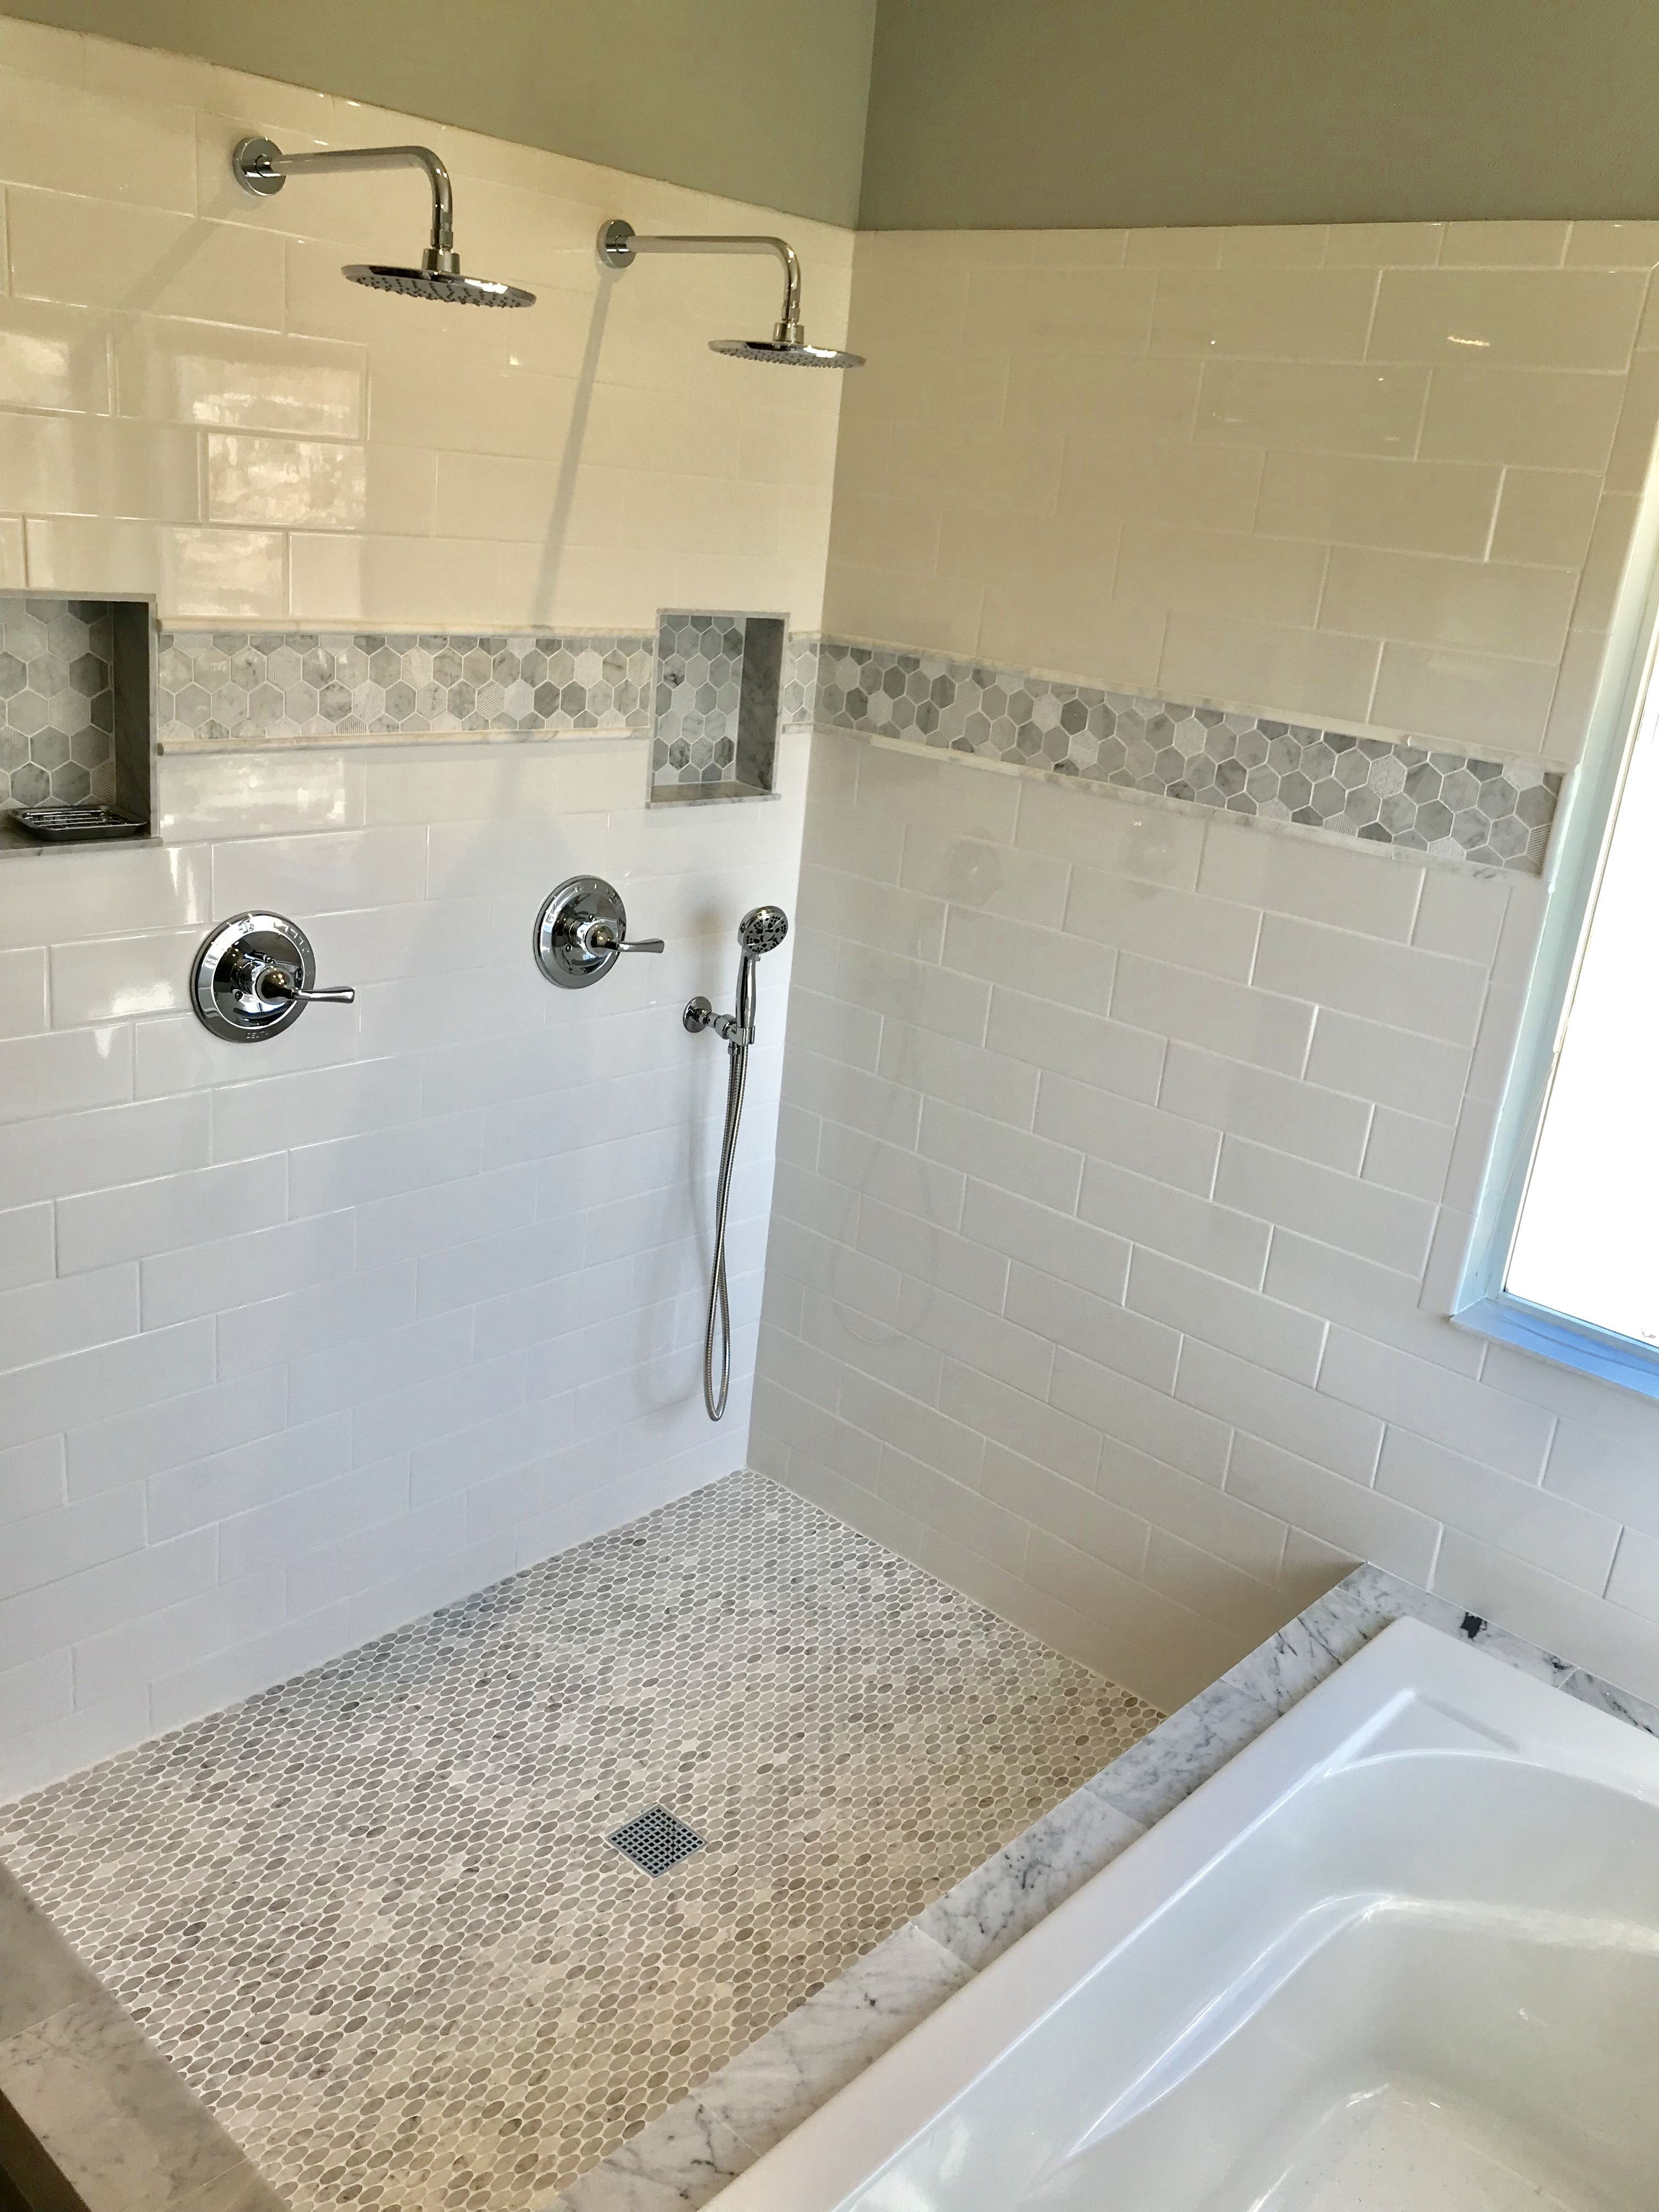 Love our new master bathroom 4x12 subway tiles marble accents dual rainfall shower heads